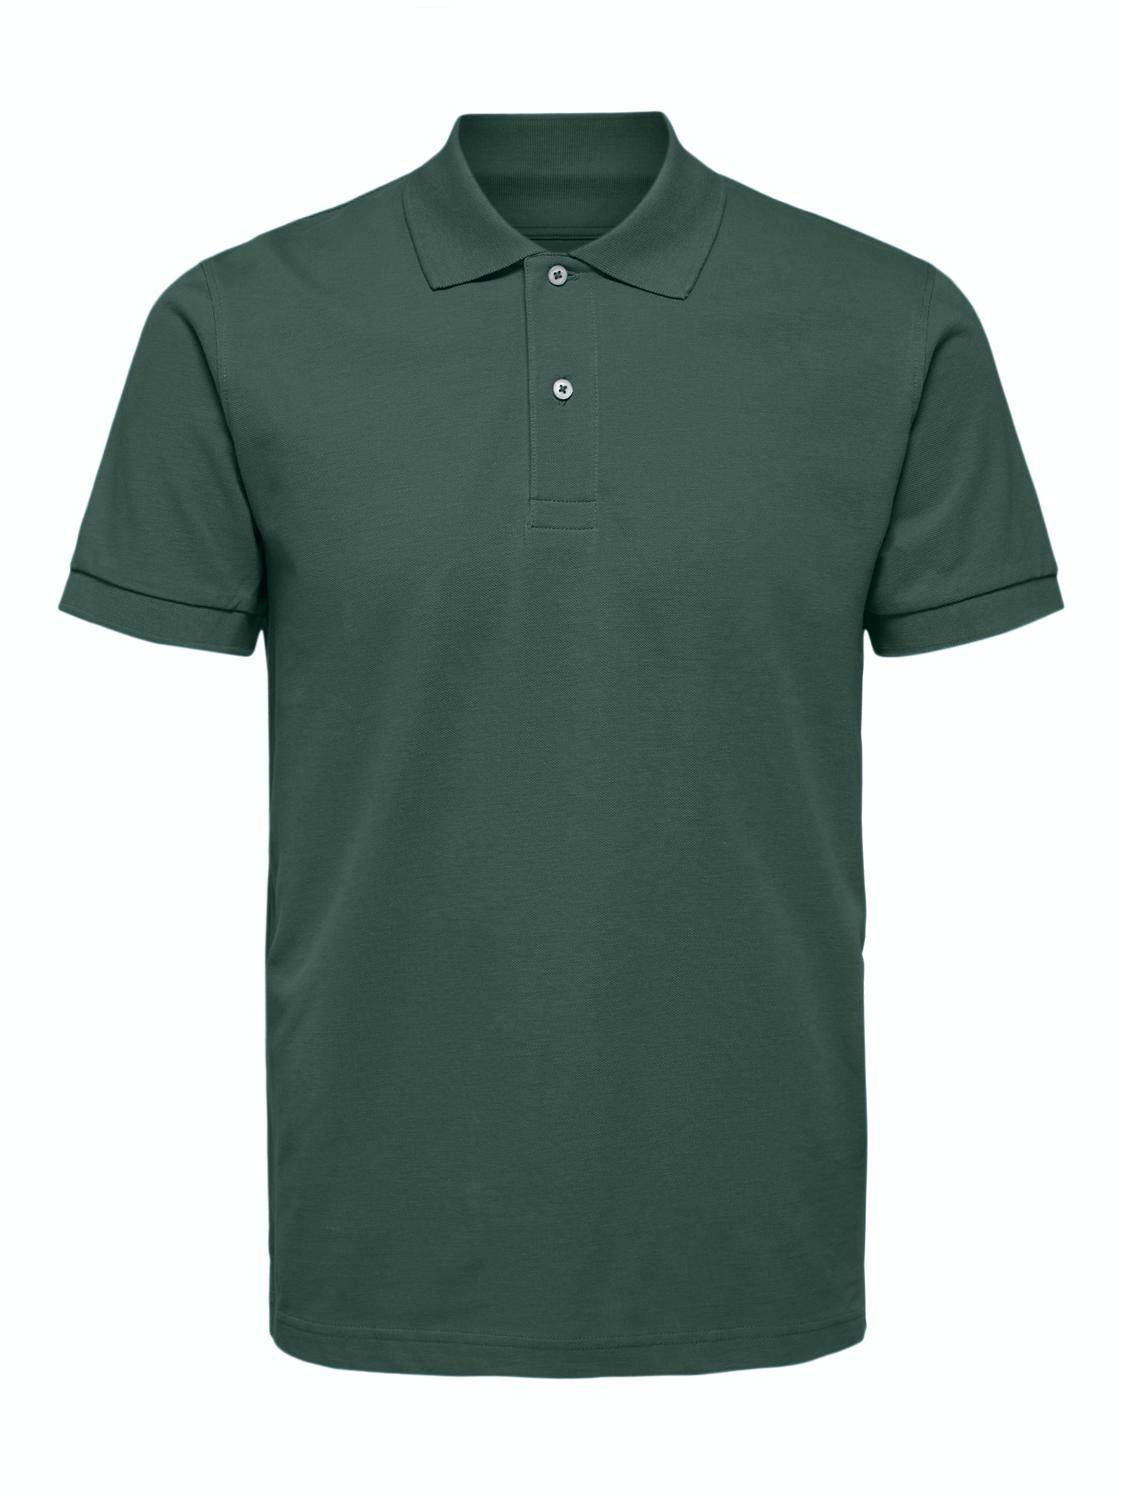 SELECTED POLO T-SHIRT SLHNEO SYCAMORE | GATE 36 Hobro